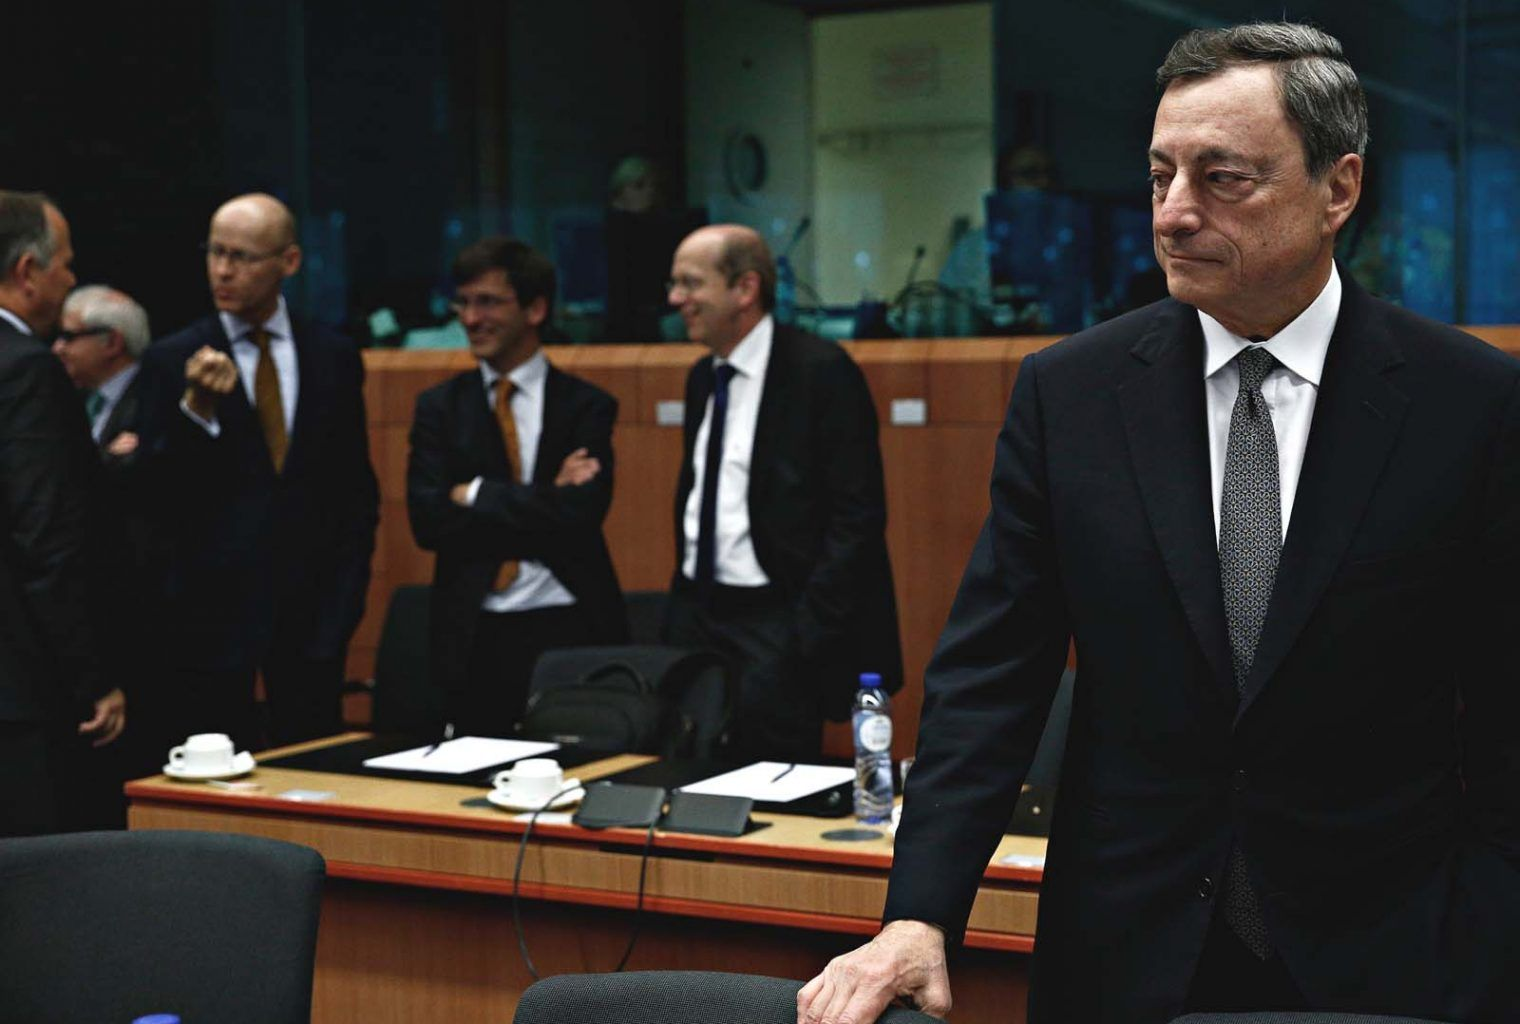 Mario Draghi Leaves European Central Bank Without Ever Raising Interest Rates Read Here Http Bit Ly 31jwed1 Anno Mario Draghi Central Bank Interest Rates